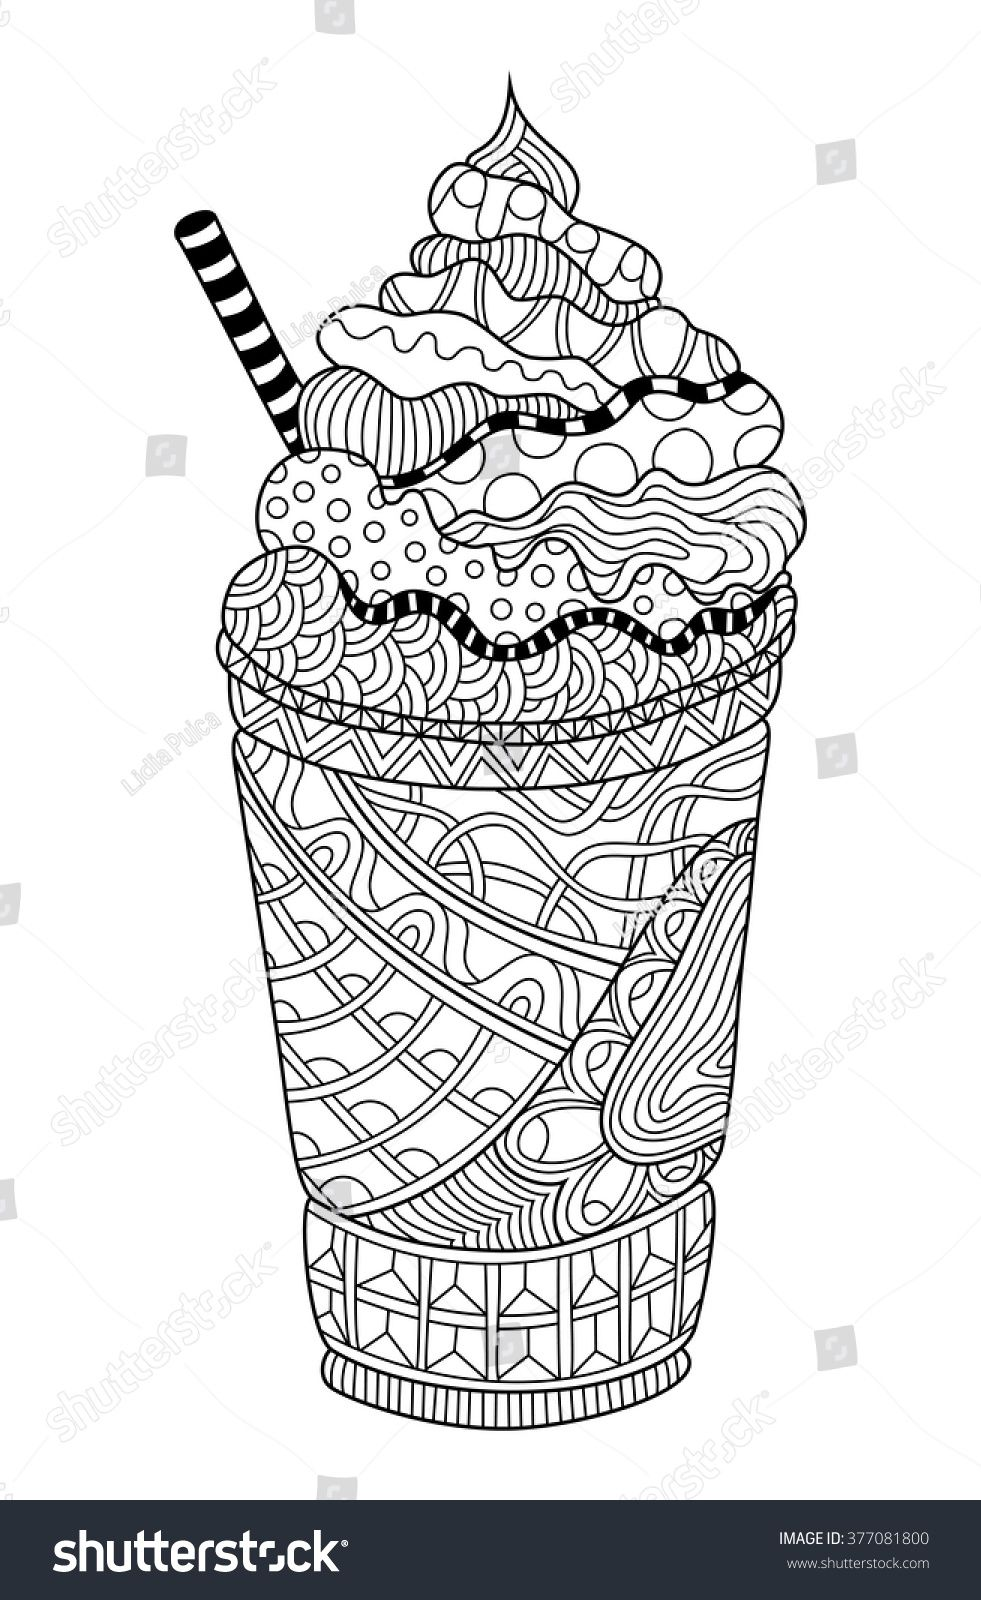 Latte Coloring Book Illustration Abstract Coloring Pages